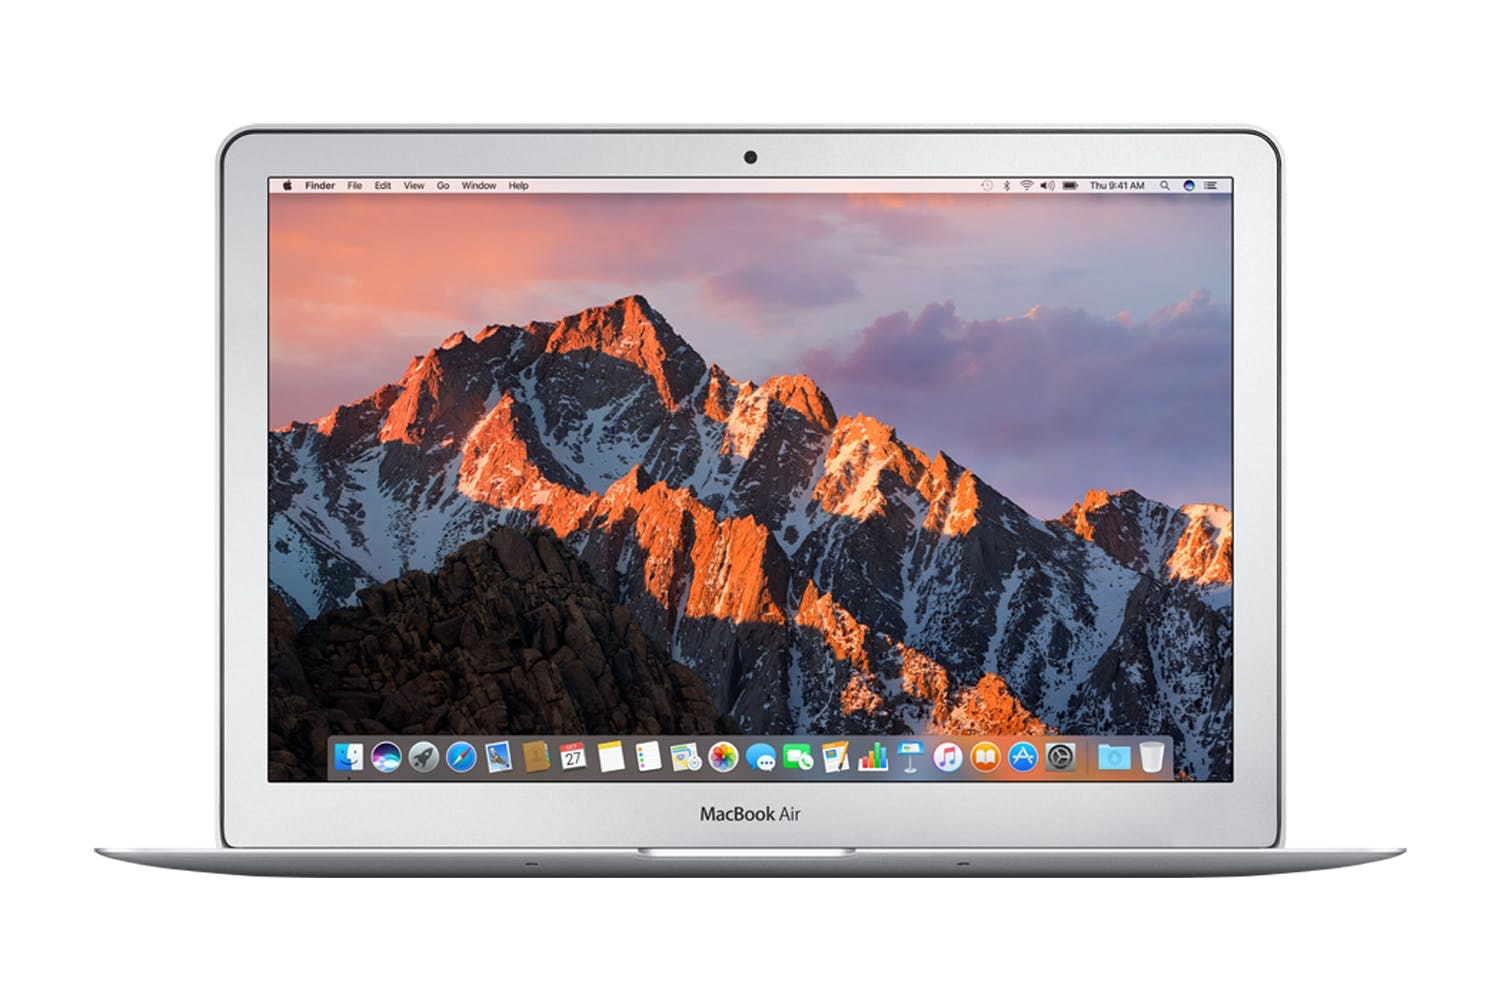 MacBook Air 13"